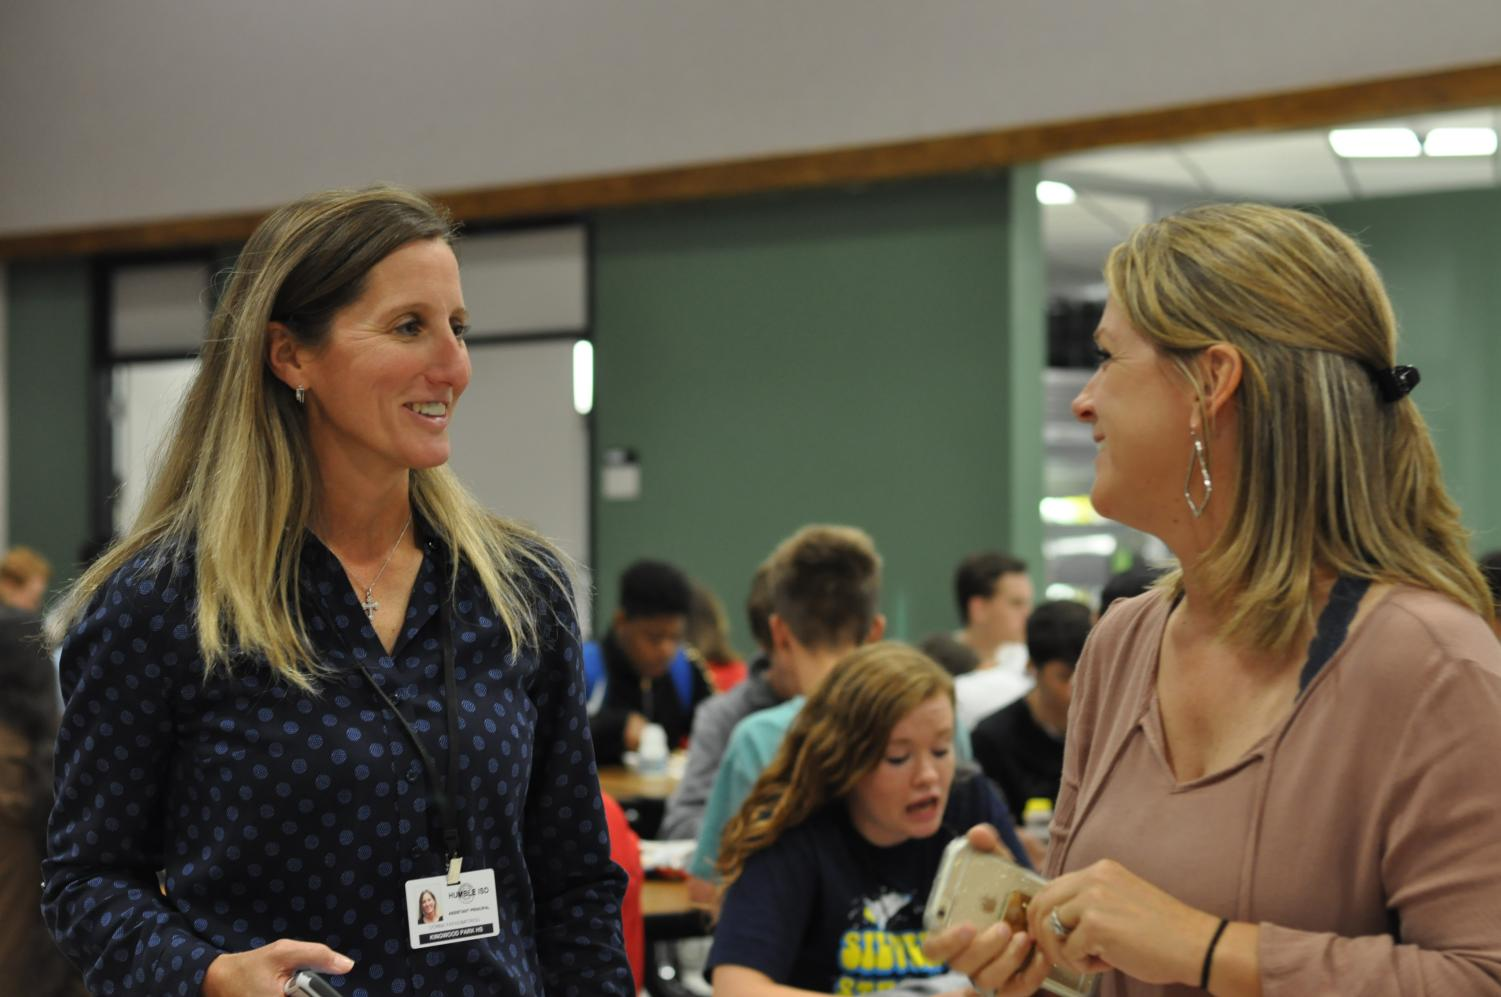 Dr. Donna Papadimitriou and Dr. Amy Wallace visit during cafeteria duty in August. The two just started working together when Dr. Papadimitriou became an assistant principal in July, however, they have known each other many years. Both are assistant principals at KPARK now.